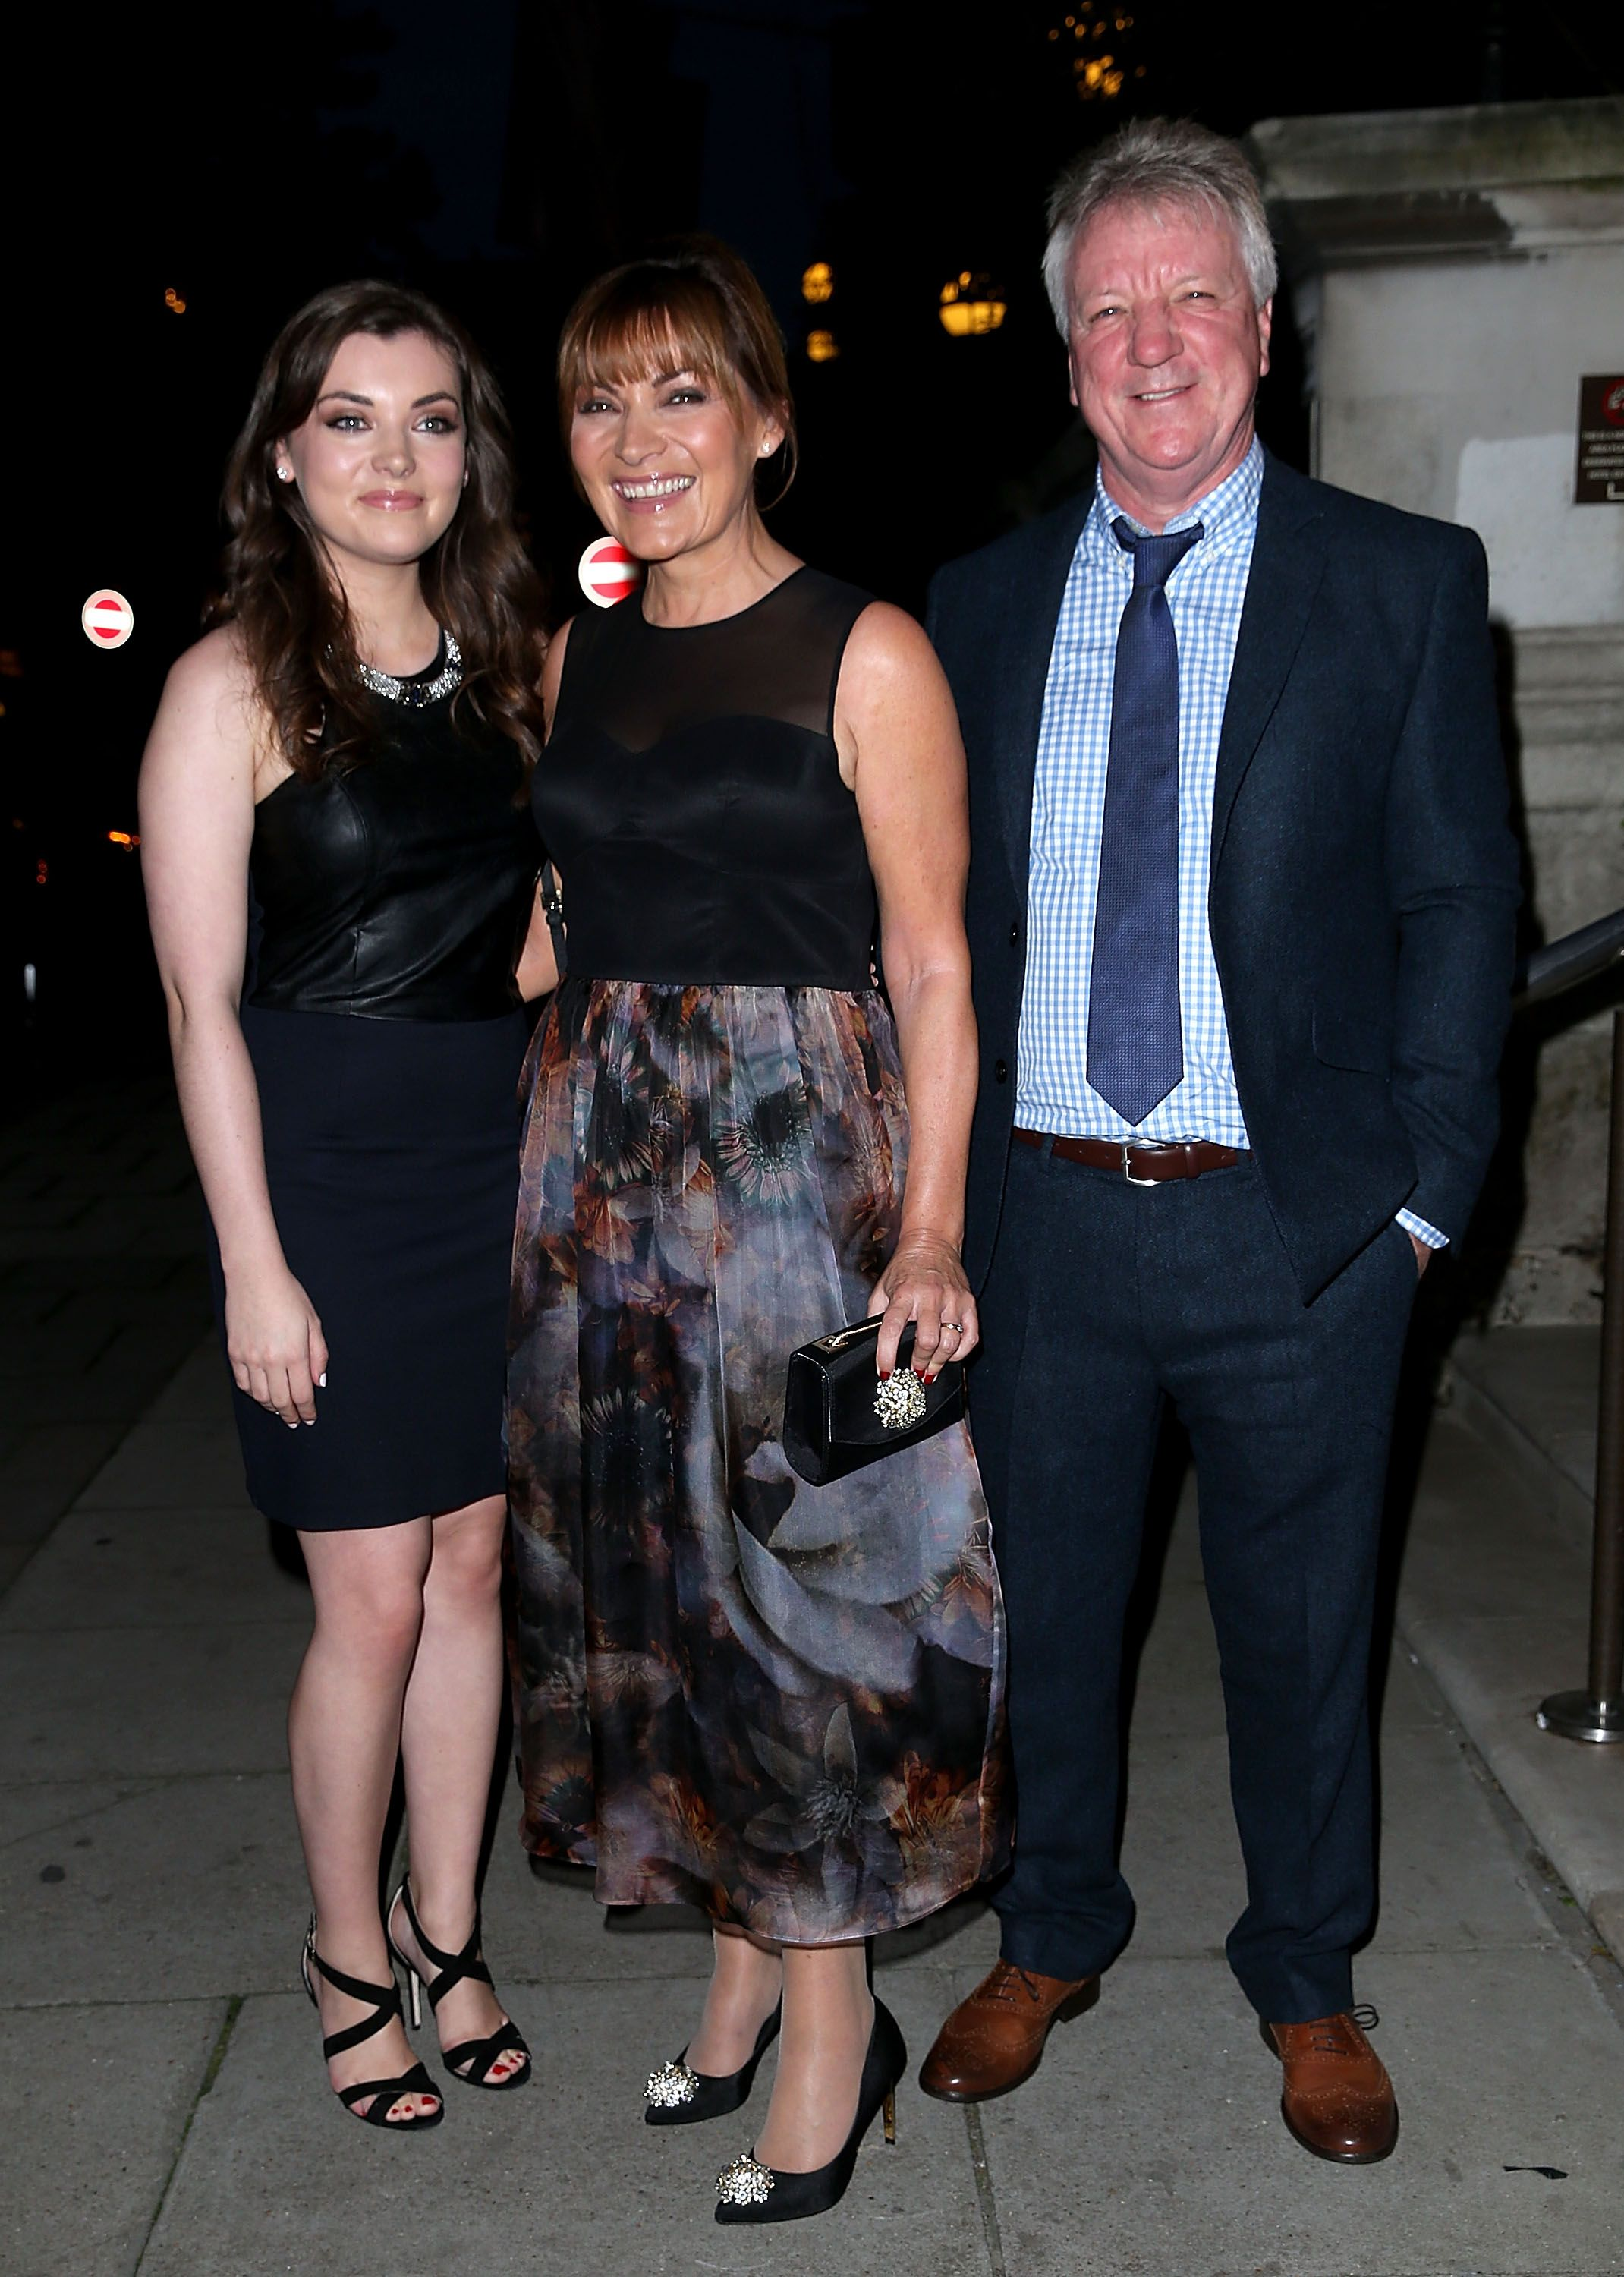 Lorraine Kelly celebrates her 27th wedding anniversary with husband Steve Smith